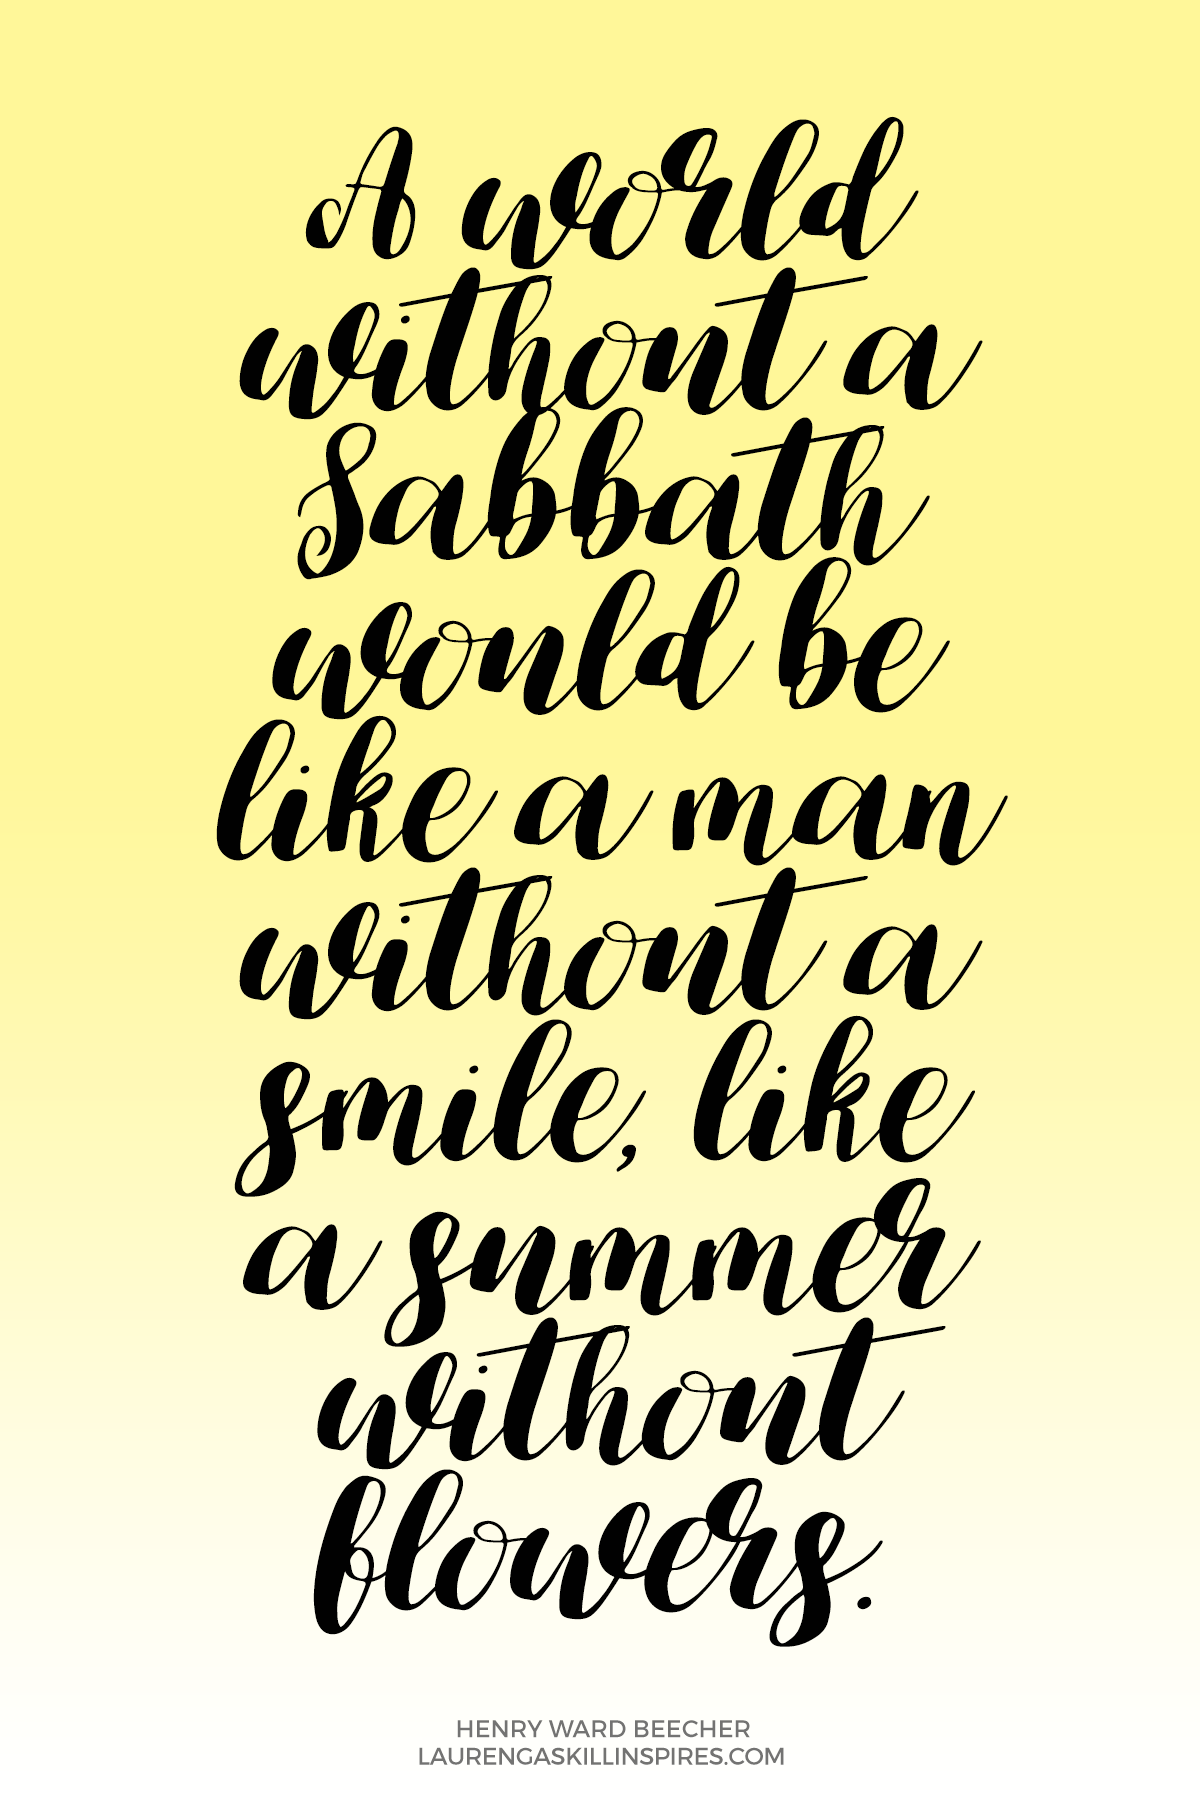 A world without Sabbath would be like a summer without flowers.